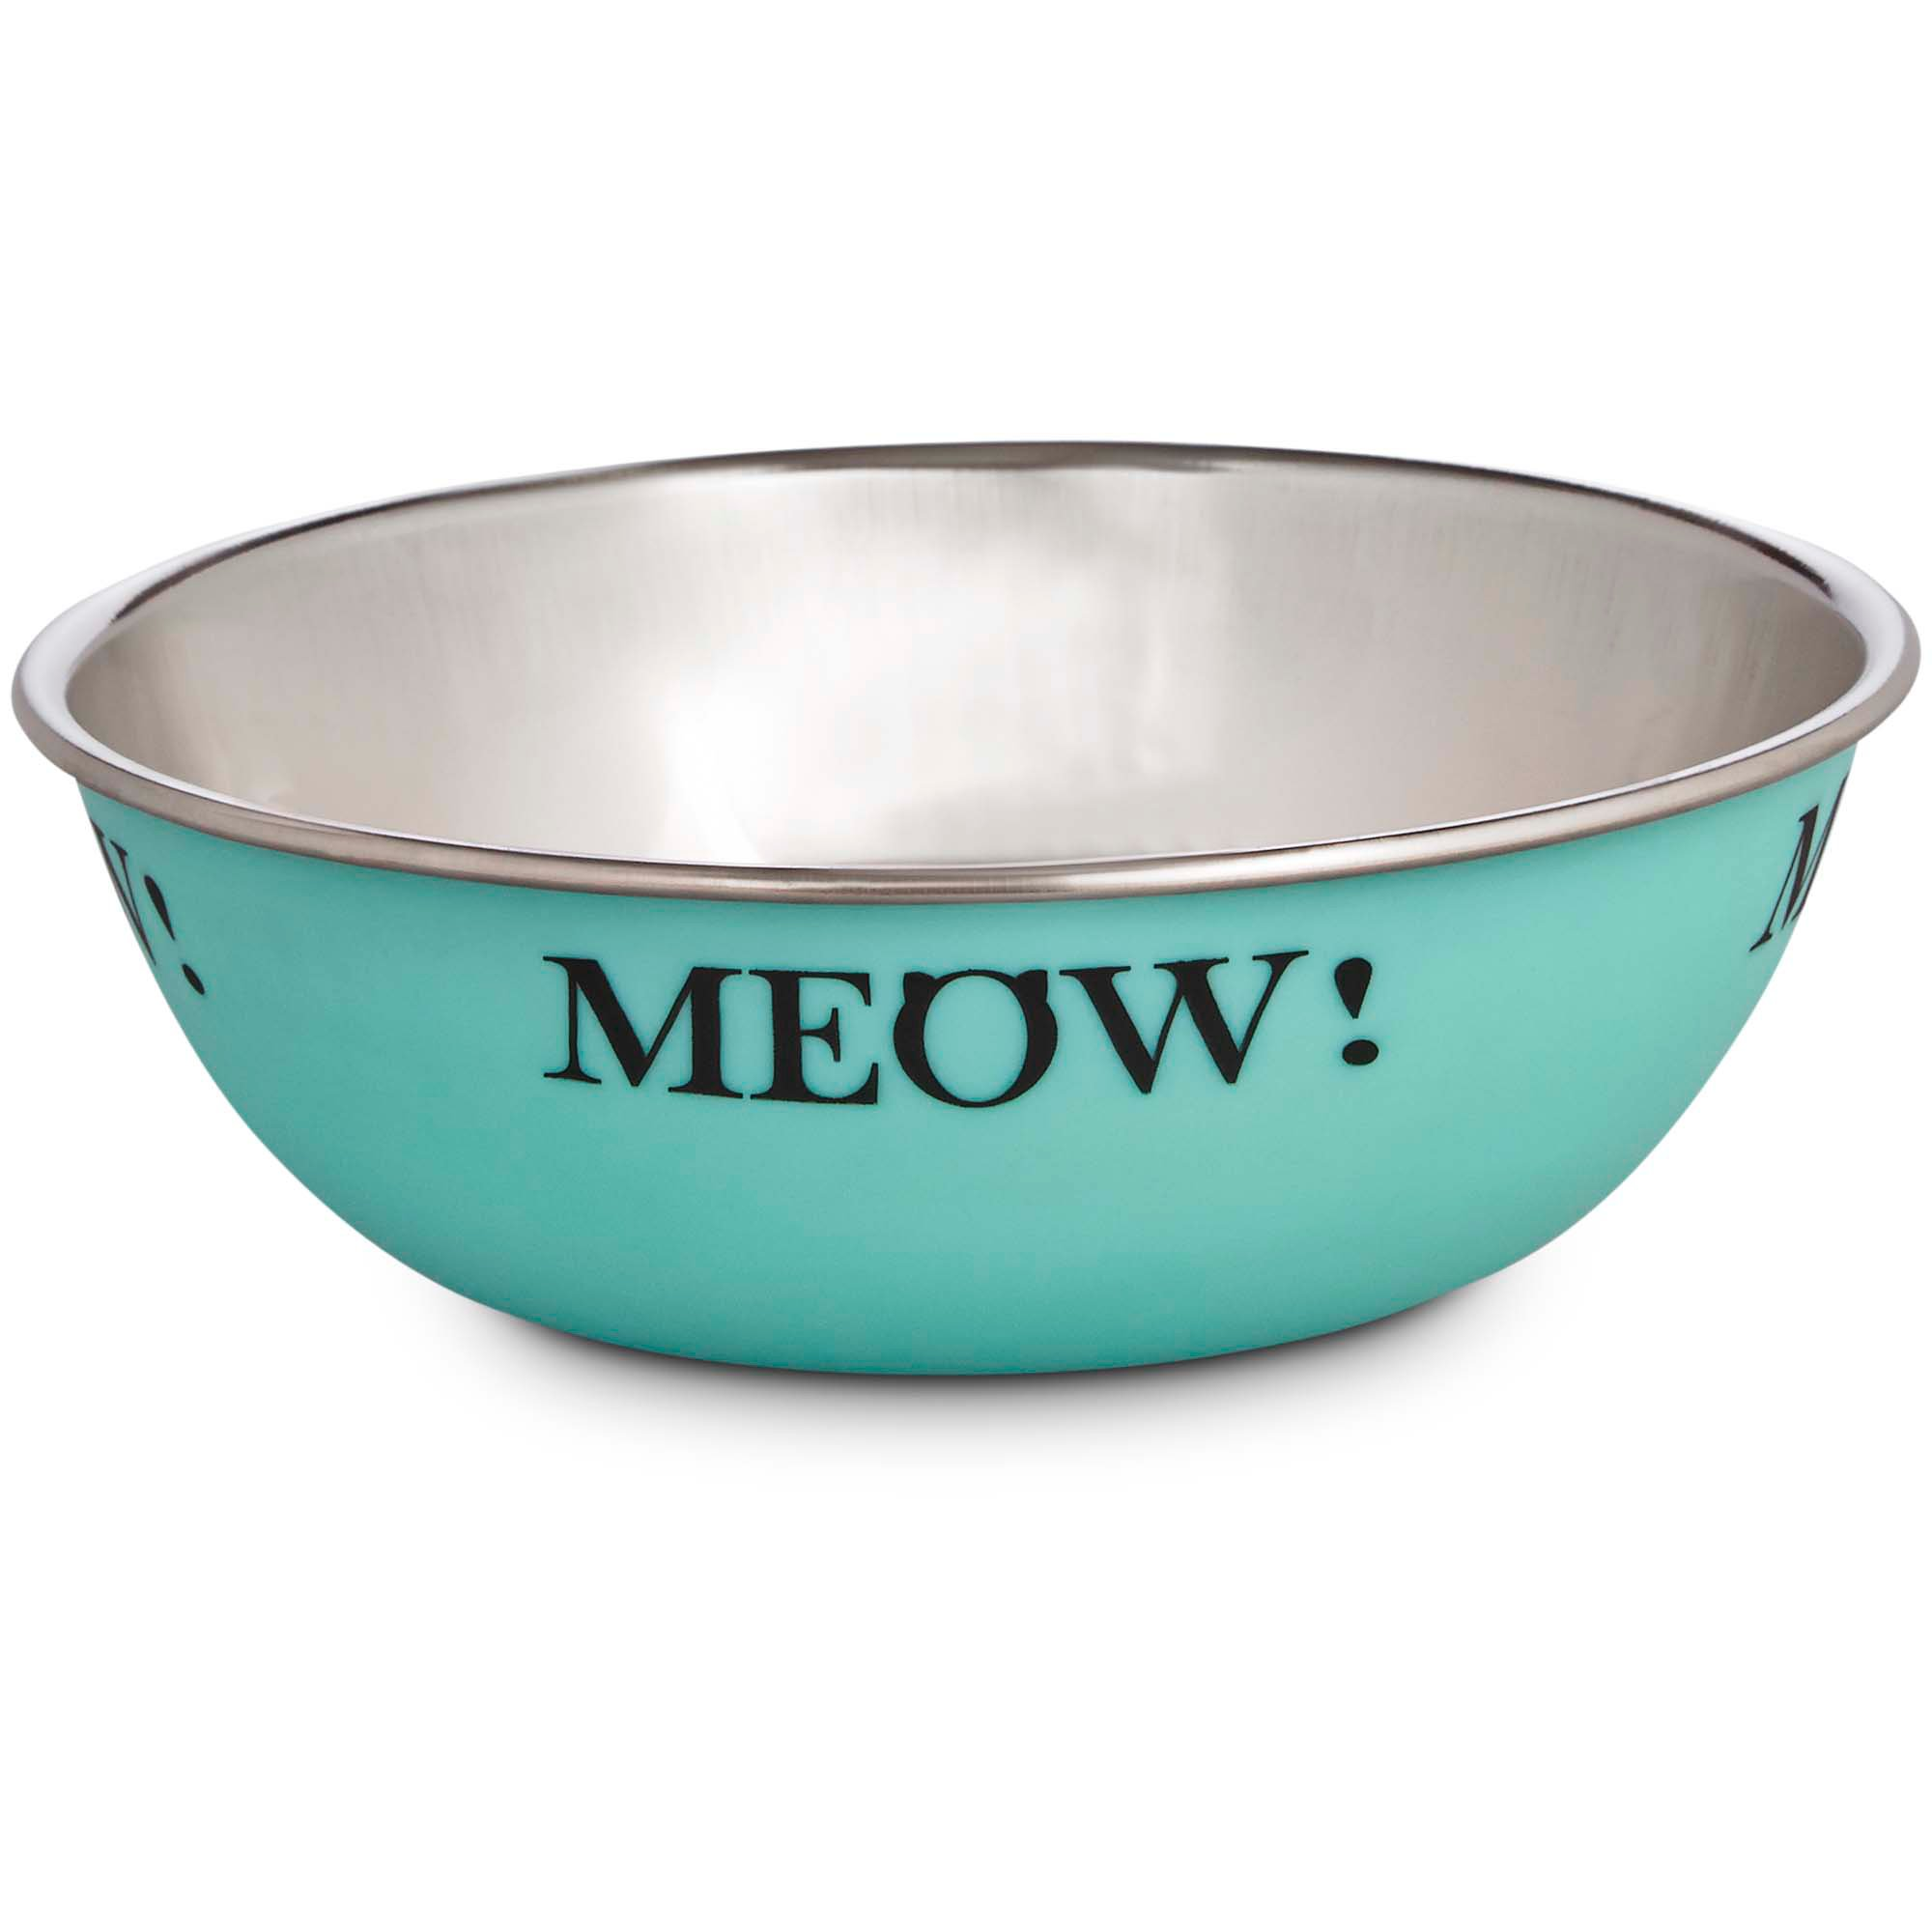 Harmony Mint Stainless Steel Cat Bowl Petco